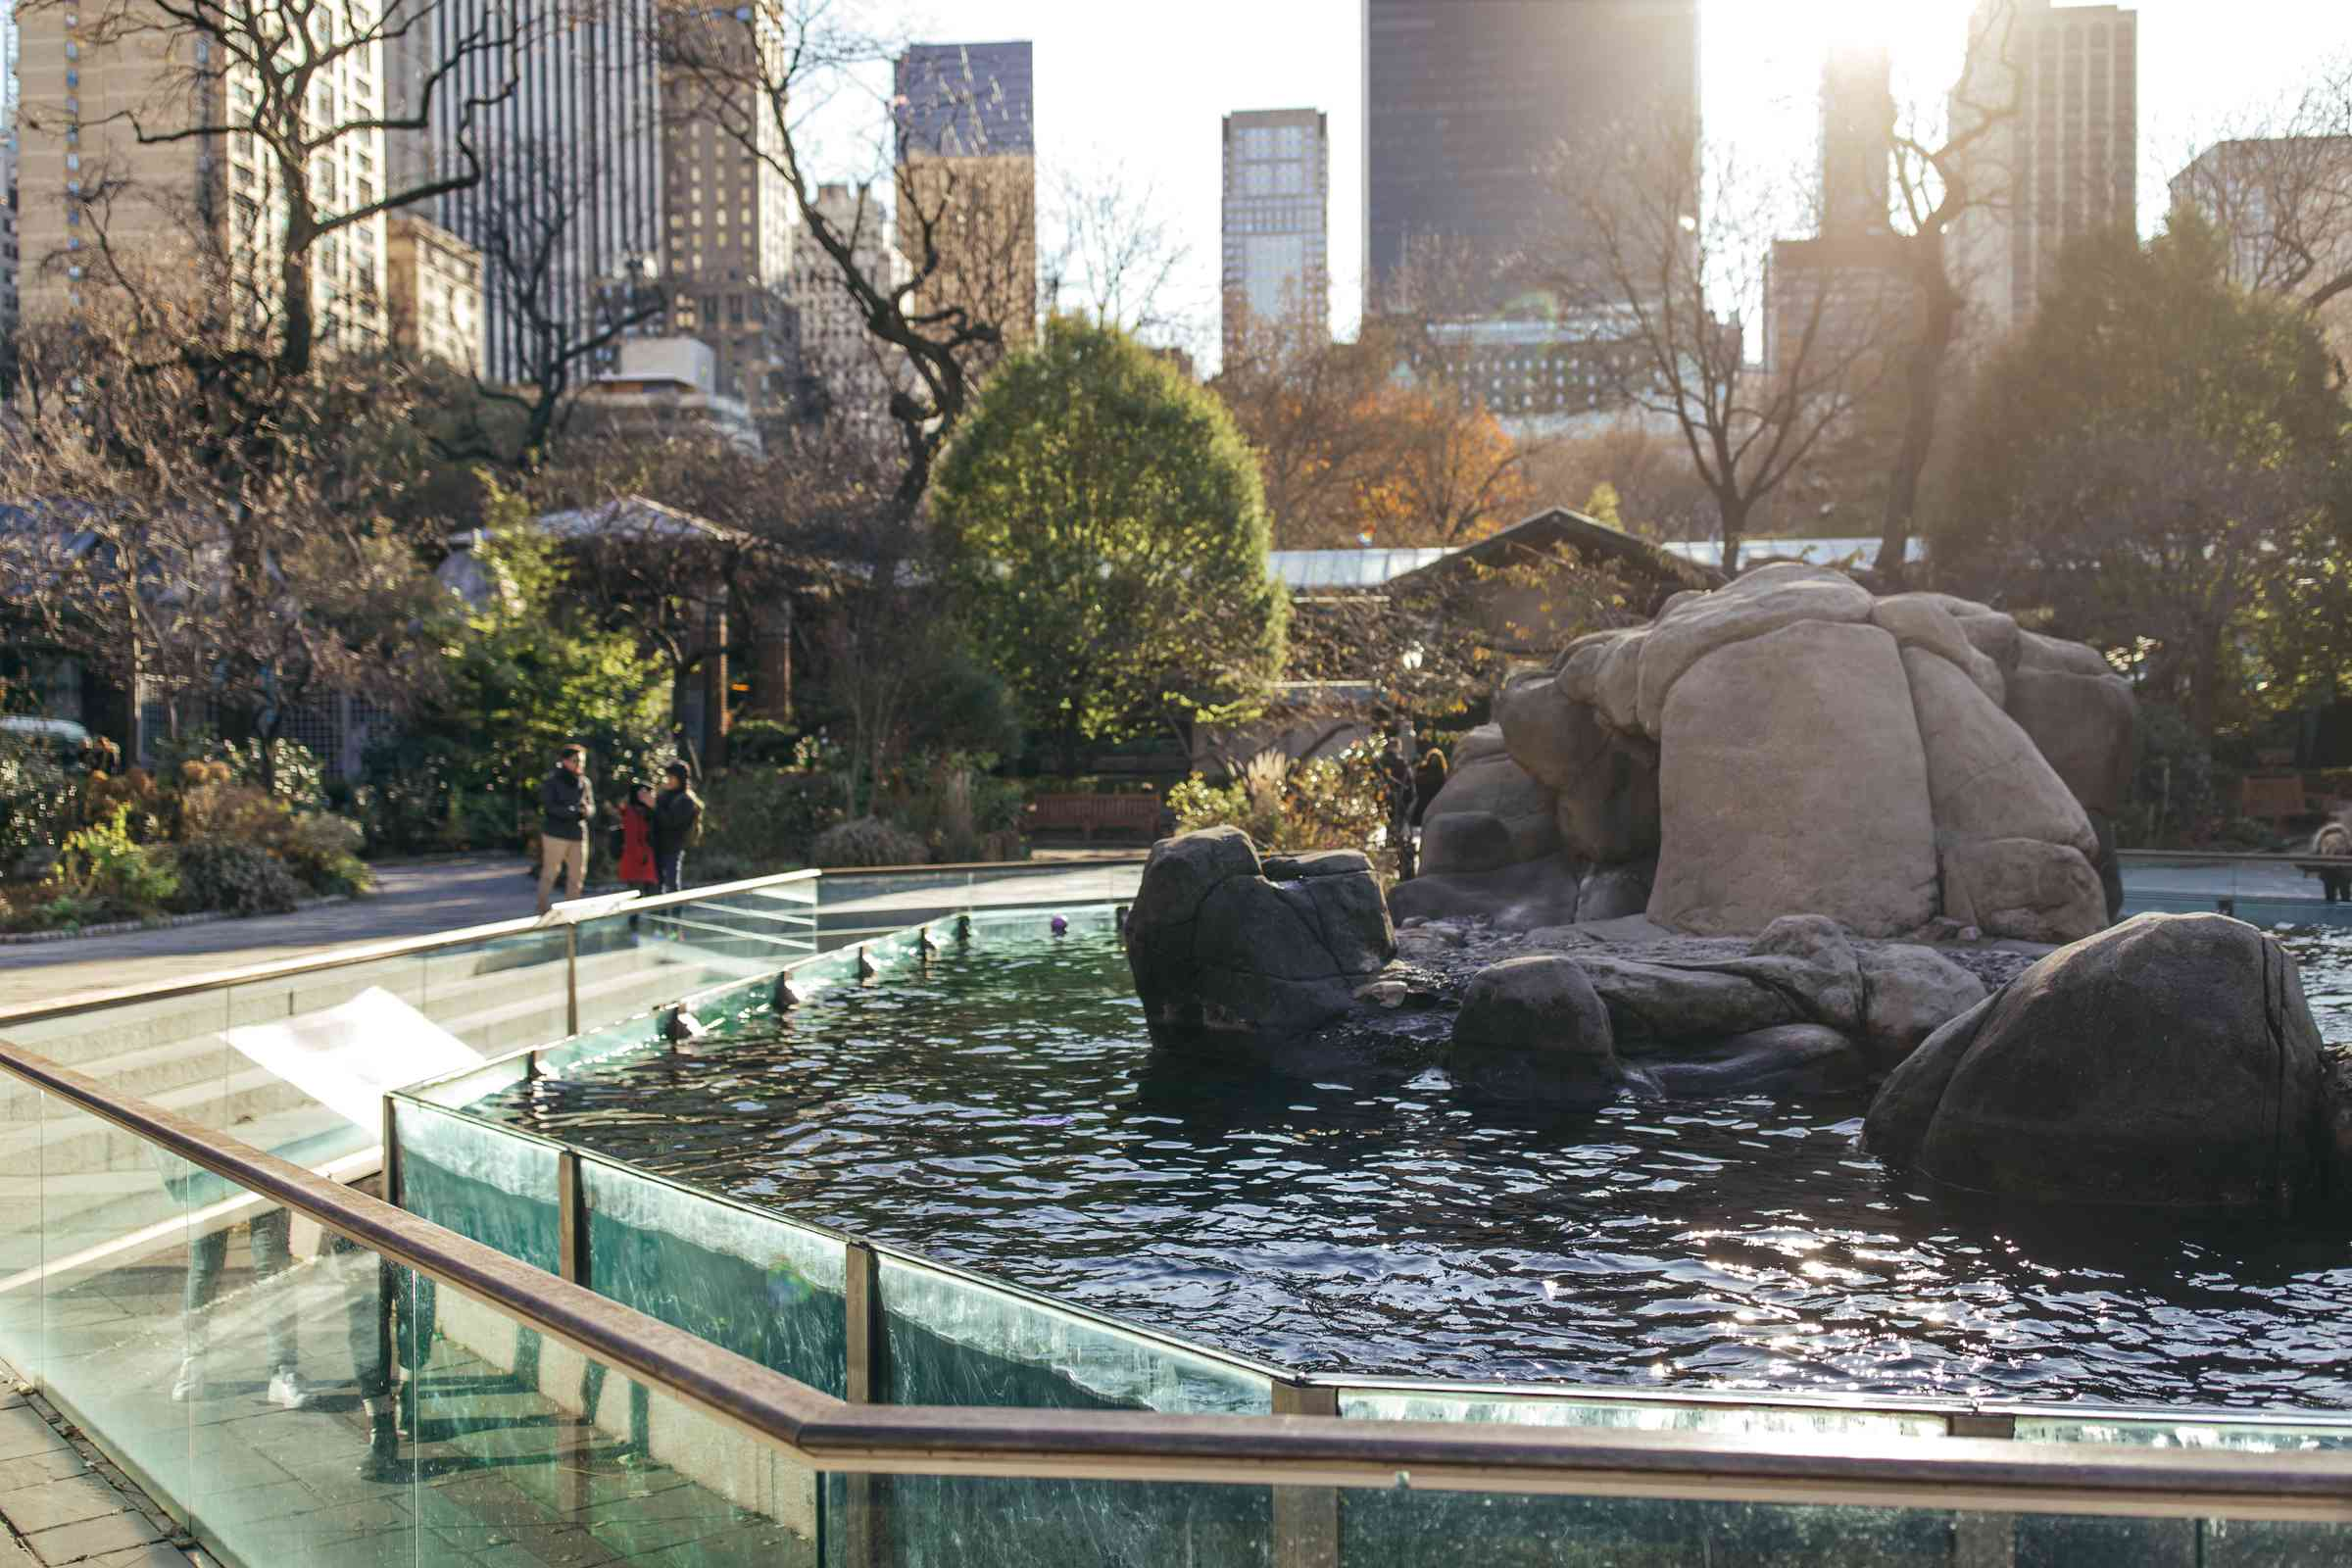 Central Park Zoo in NYC